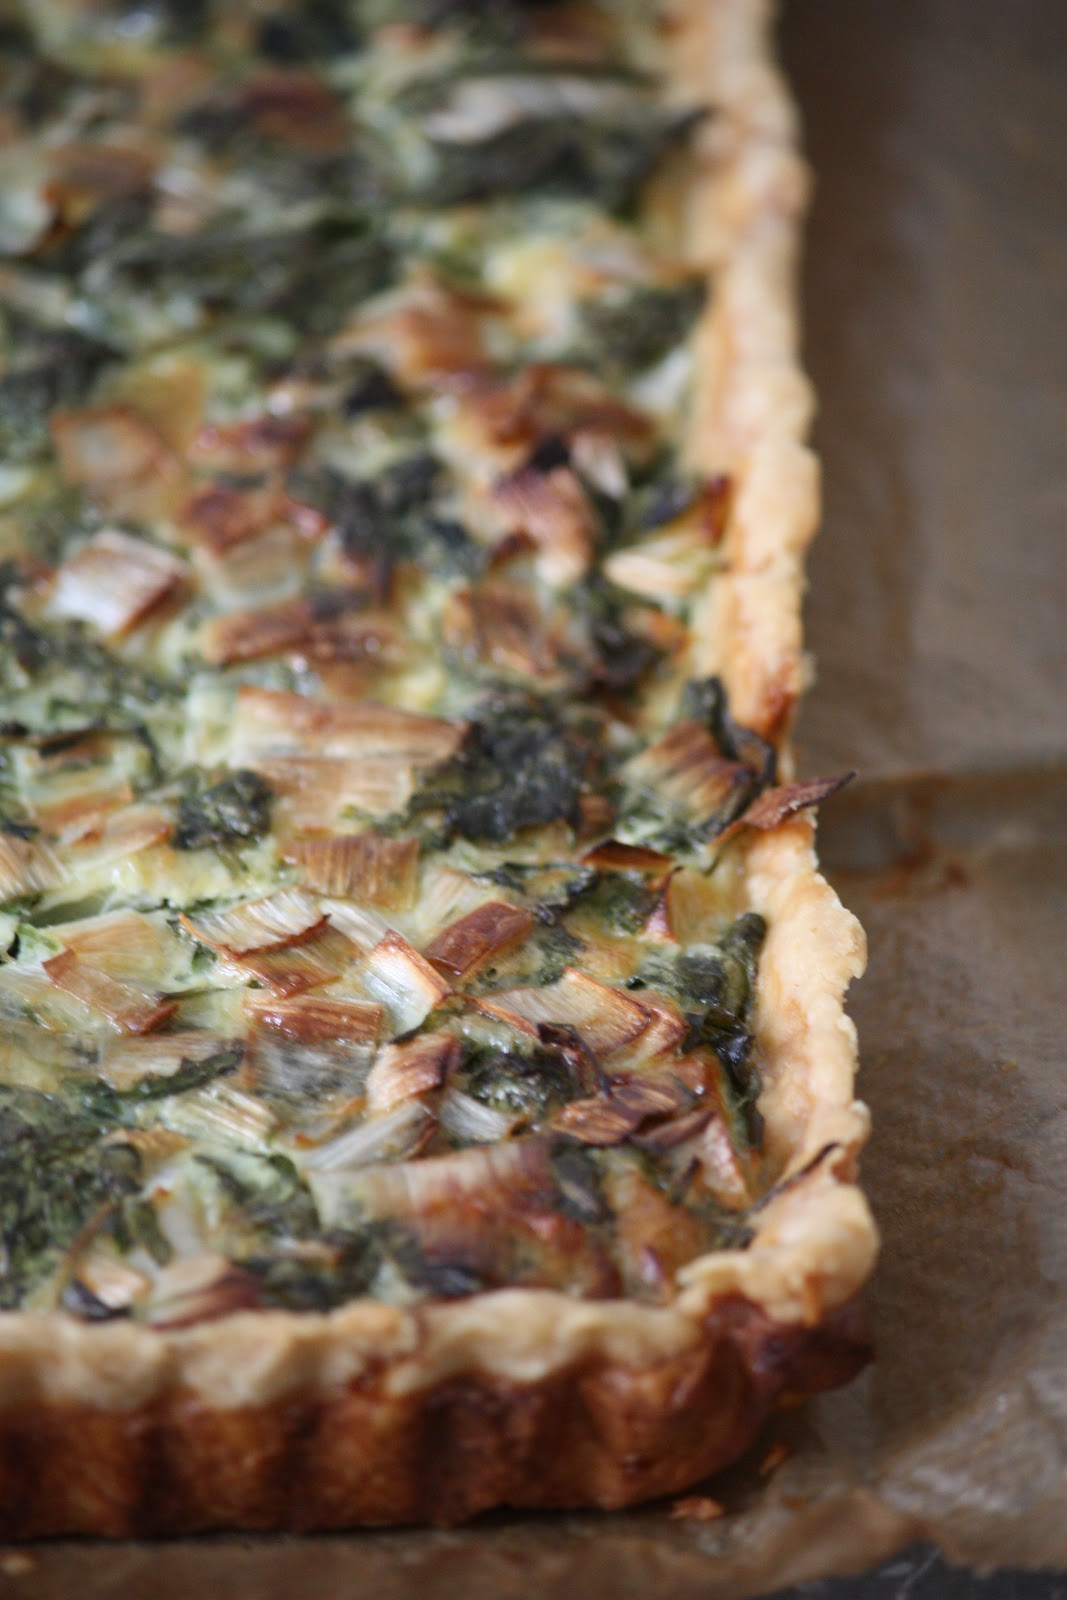 Passion Meets Creativity: Rocket Leek Tart with a Touch of Parmesan